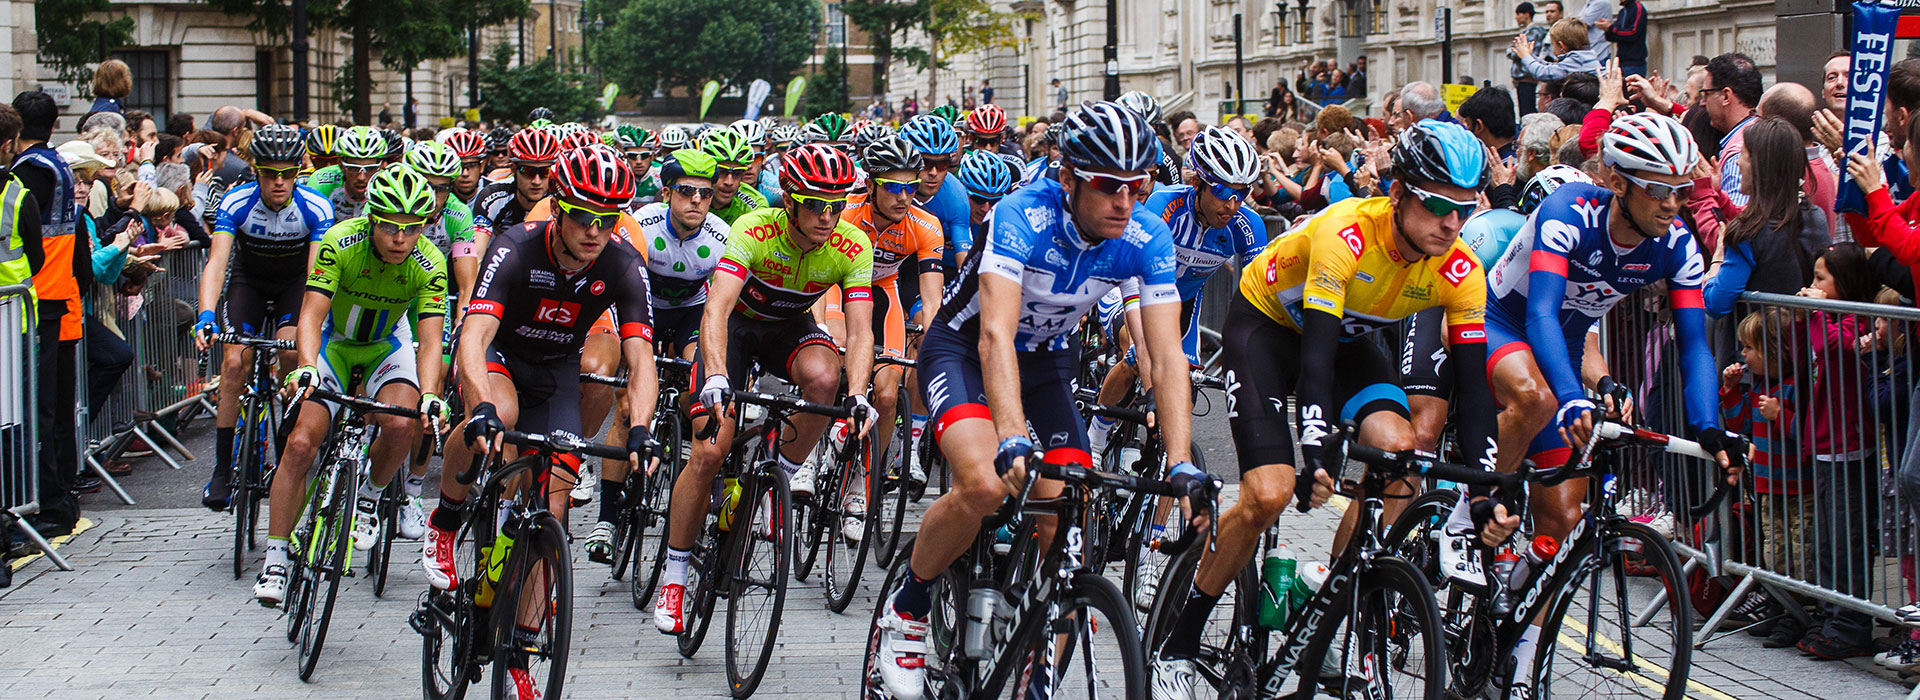 Tour of Britain 2013 cycle race – Stage 8